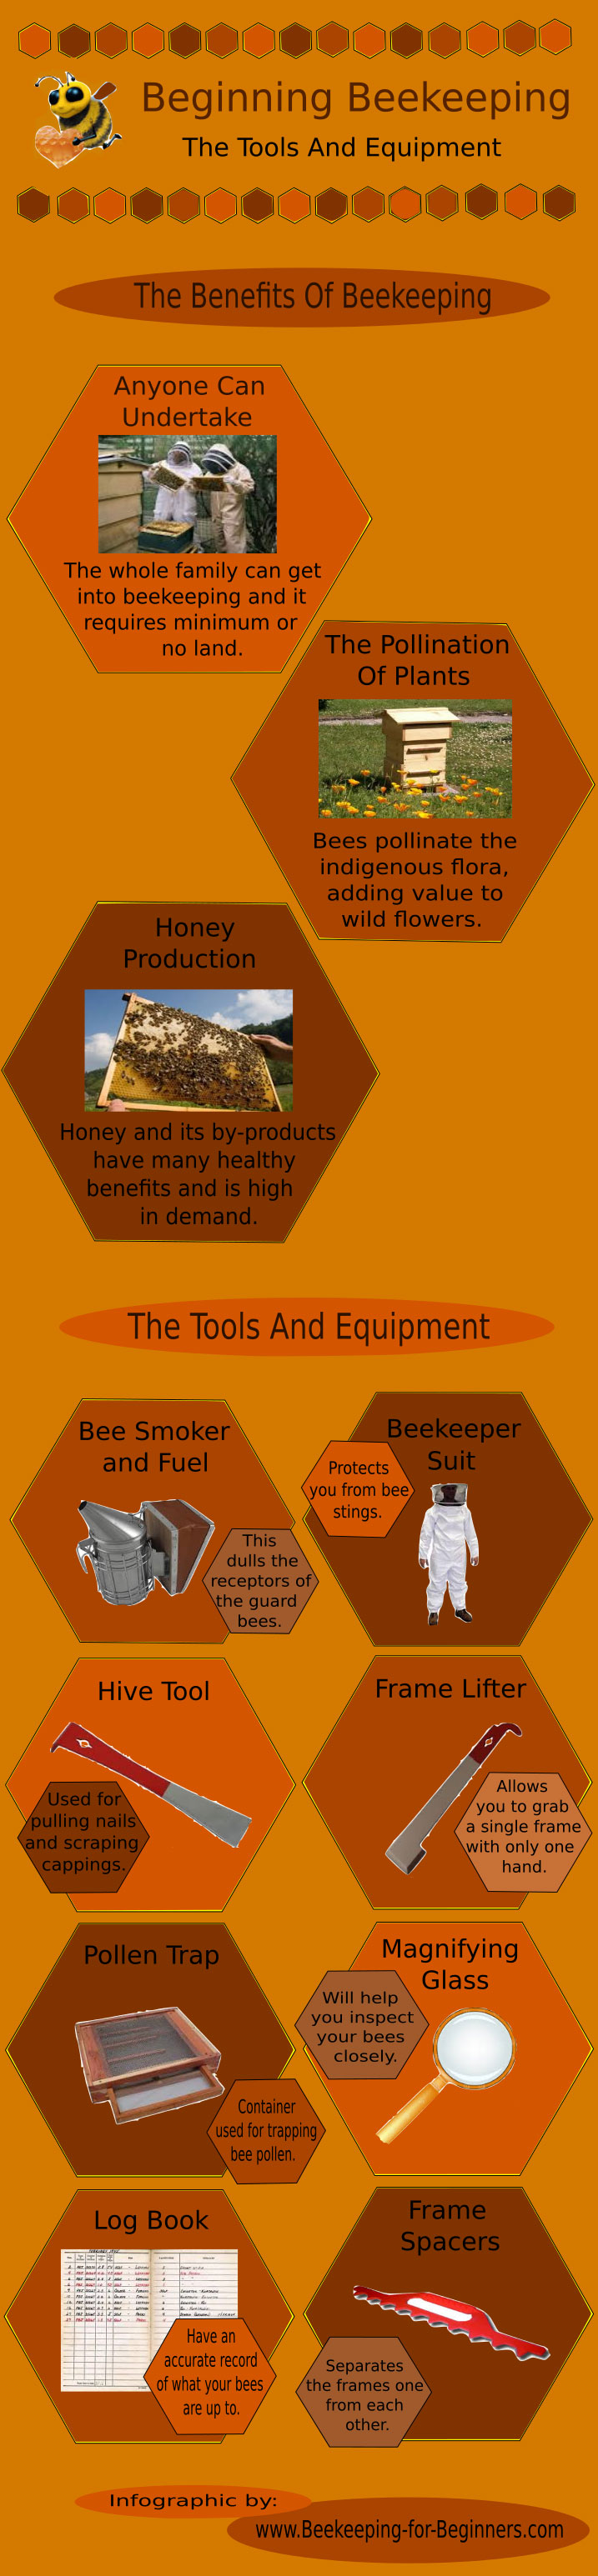 Beginning Beekeeping Tools And Equipment